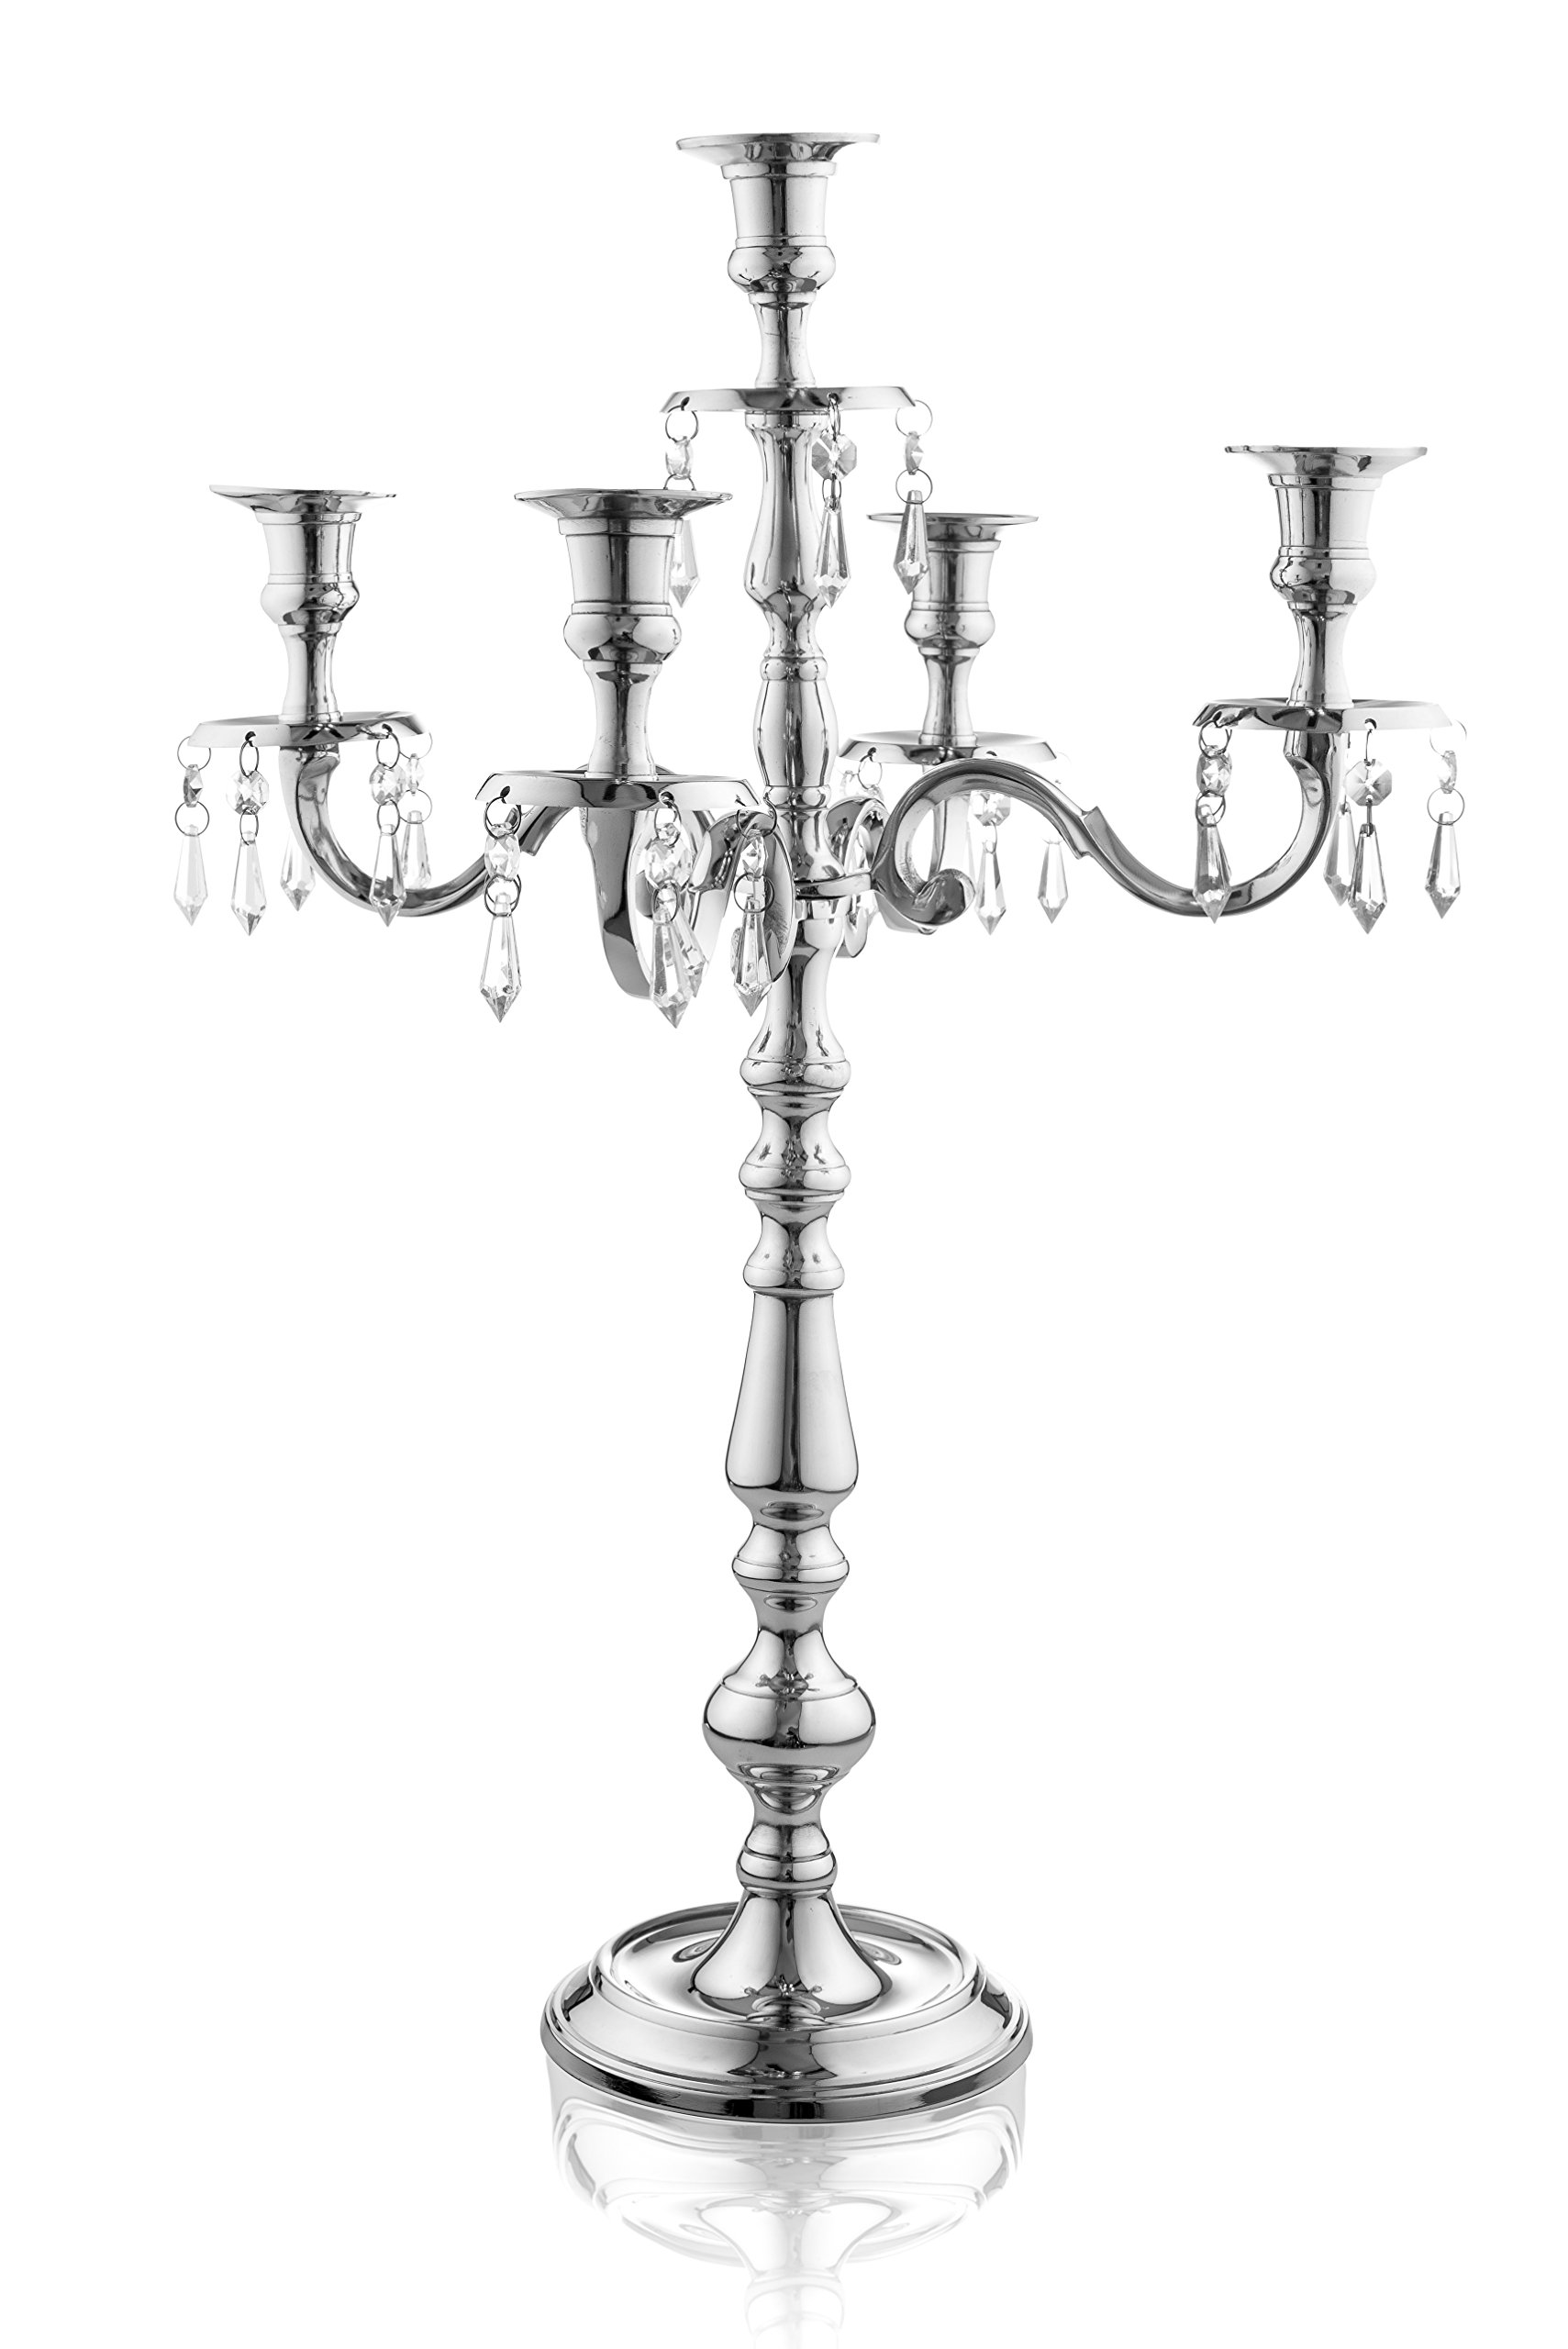 Klikel Traditional 24 Inch Silver 5 Candle Candelabra With Crystal Drops - Classic Elegant Design - Wedding, Dinner Party And Formal Event Centerpiece - Nickel Plated Aluminum, Dangling Acrylic Crysta by Klikel